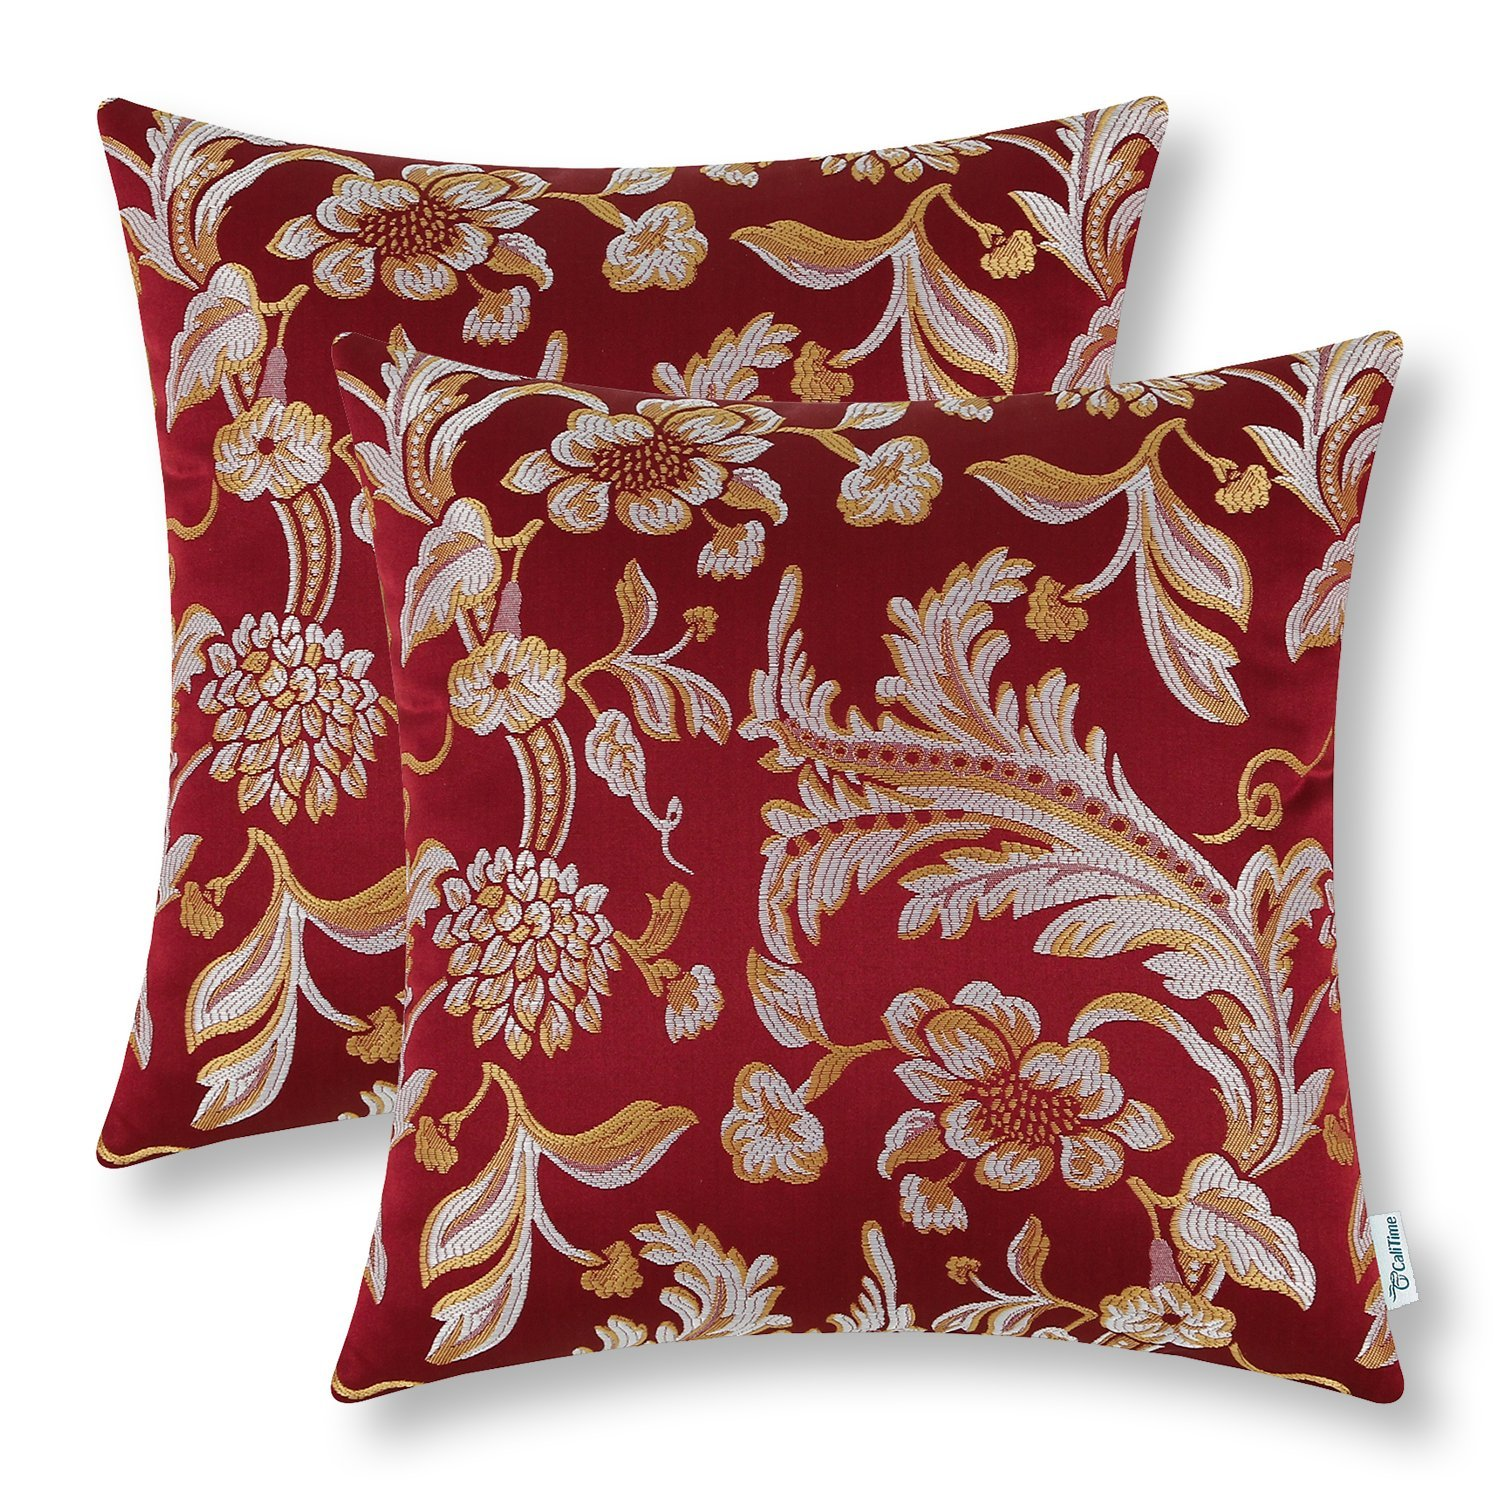 Couch throw covers couch throw covers sale home design for Insider design pillow